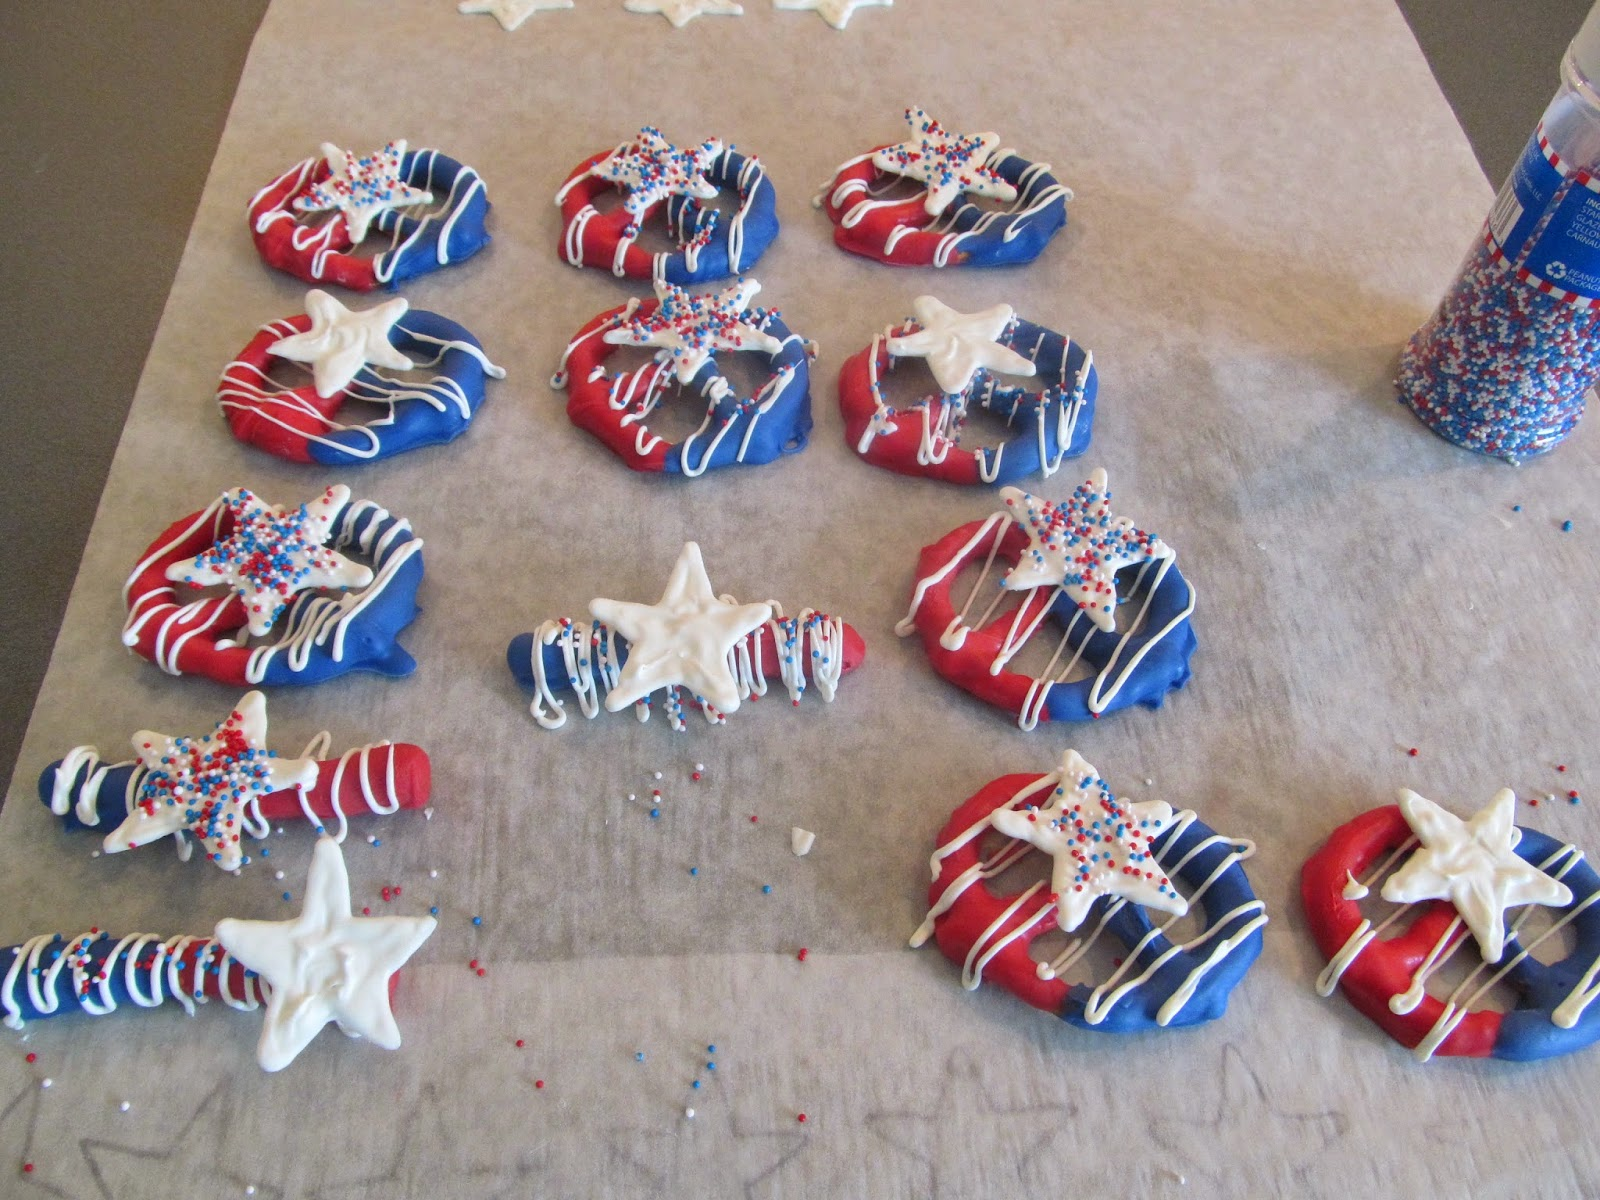 Red, White, and Blue pretzels